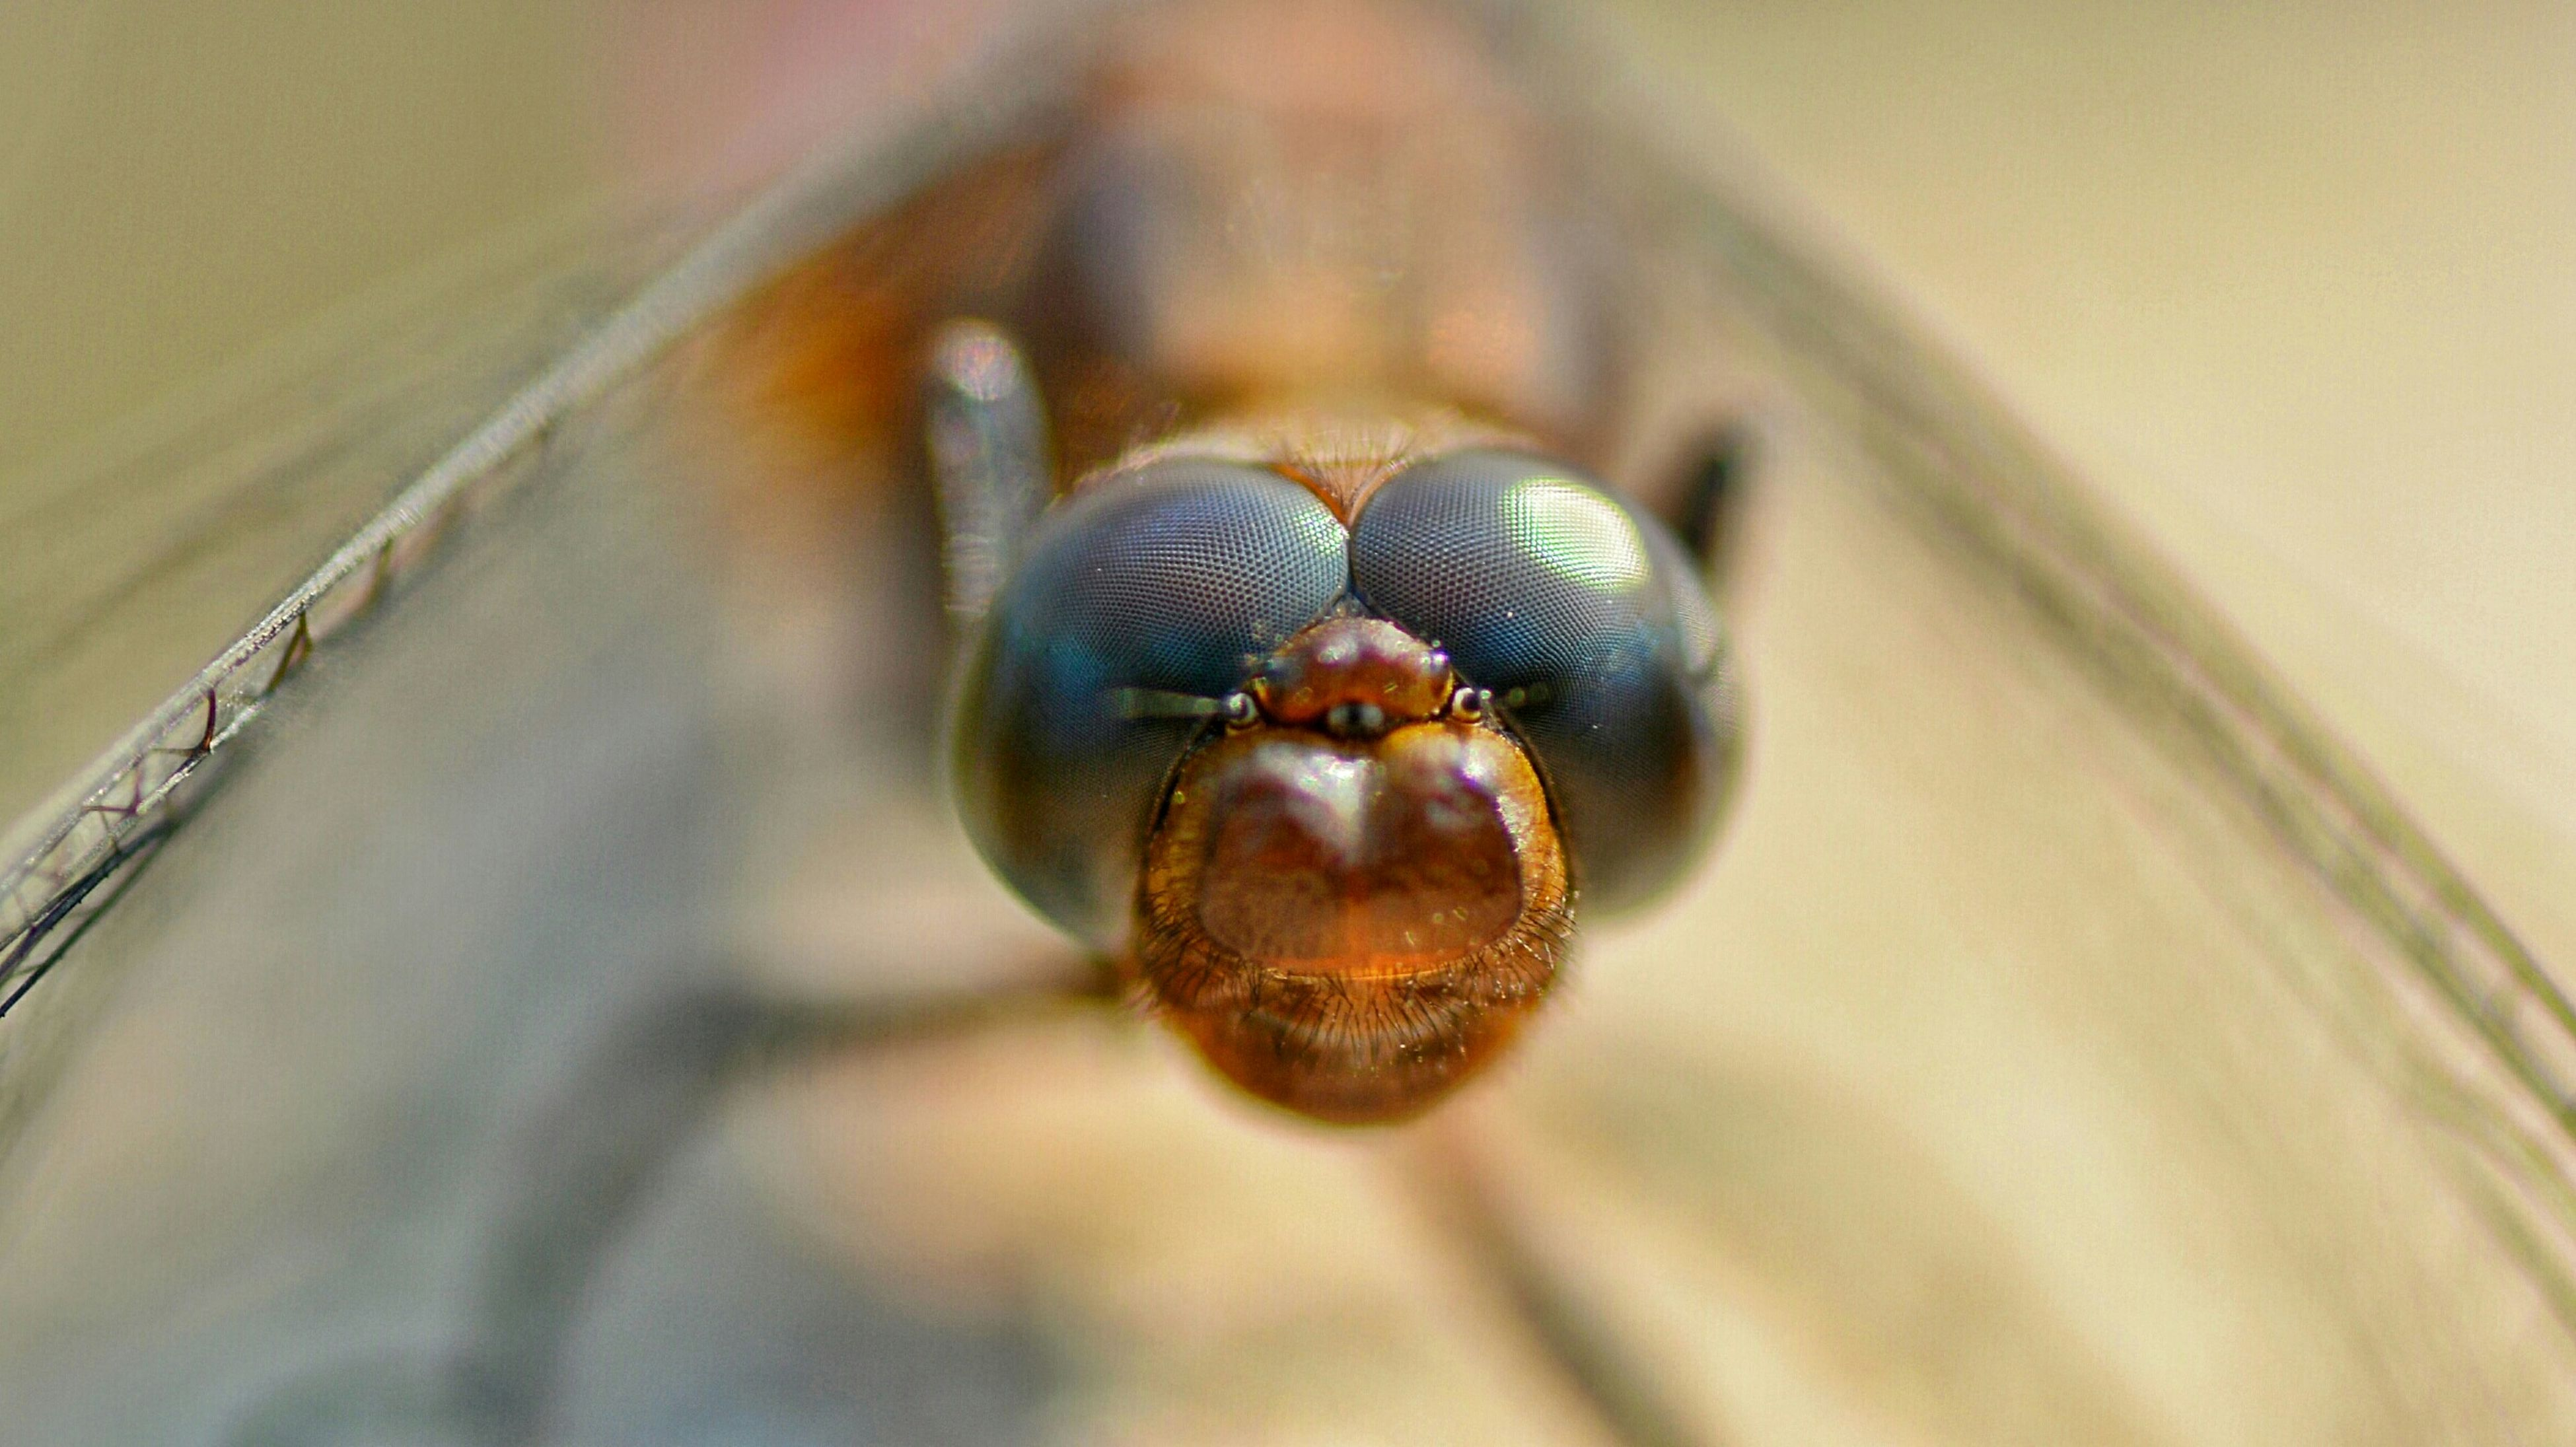 one animal, animal themes, close-up, insect, indoors, wildlife, animals in the wild, focus on foreground, selective focus, portrait, looking at camera, extreme close-up, animal body part, animal eye, macro, no people, animal head, zoology, day, extreme close up